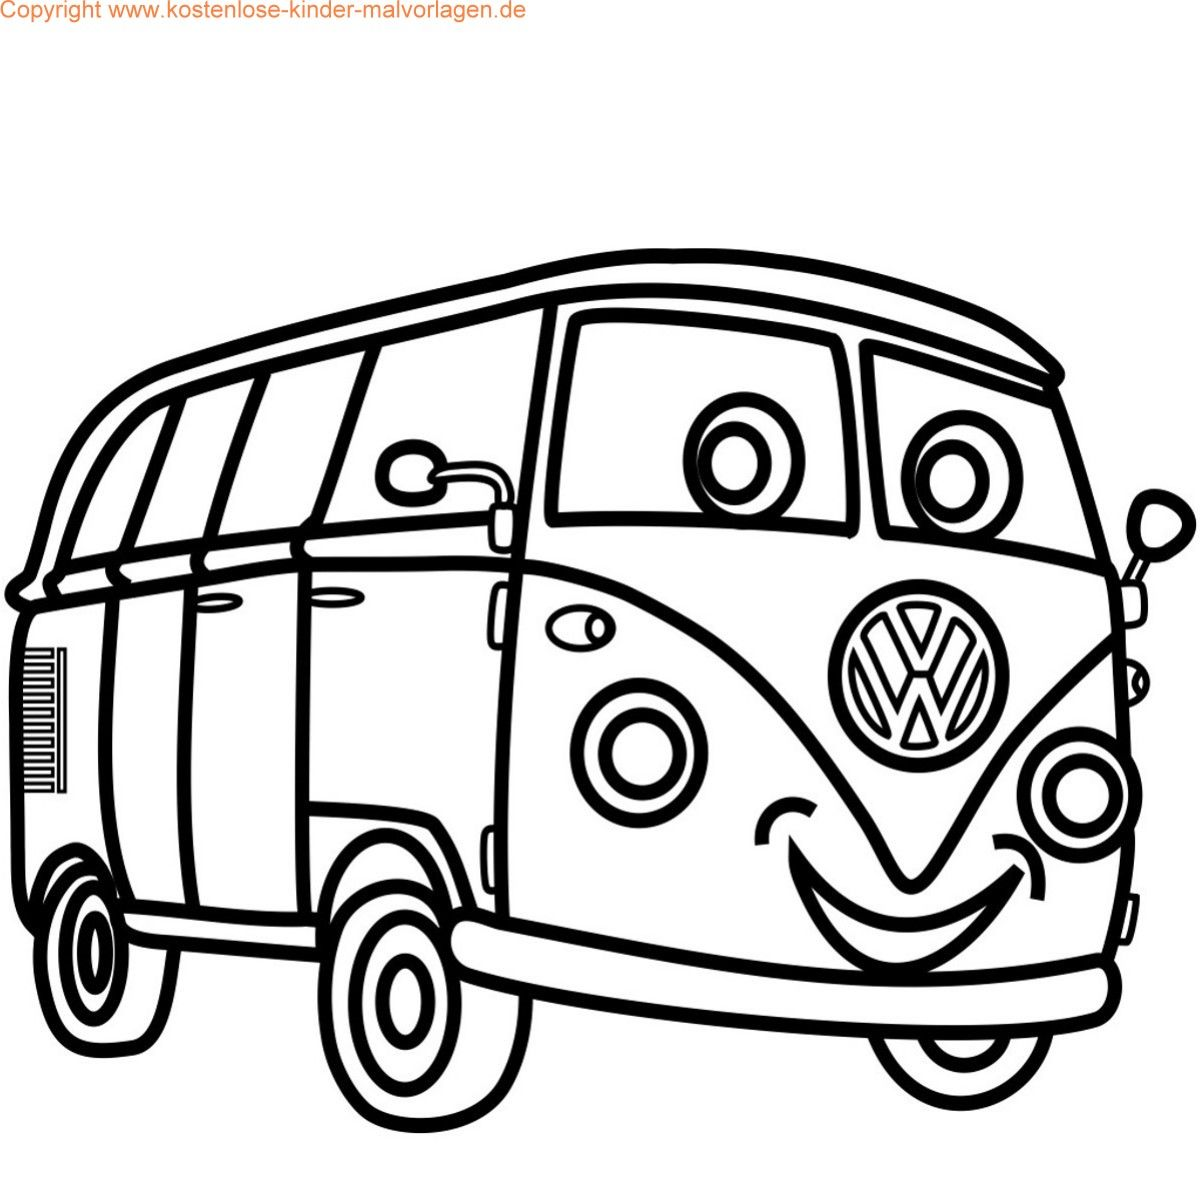 Ausmalbilder Auto Marken : Pin Kostenlose Auto Malvorlage Ausmalbild Car Coloring Pages On